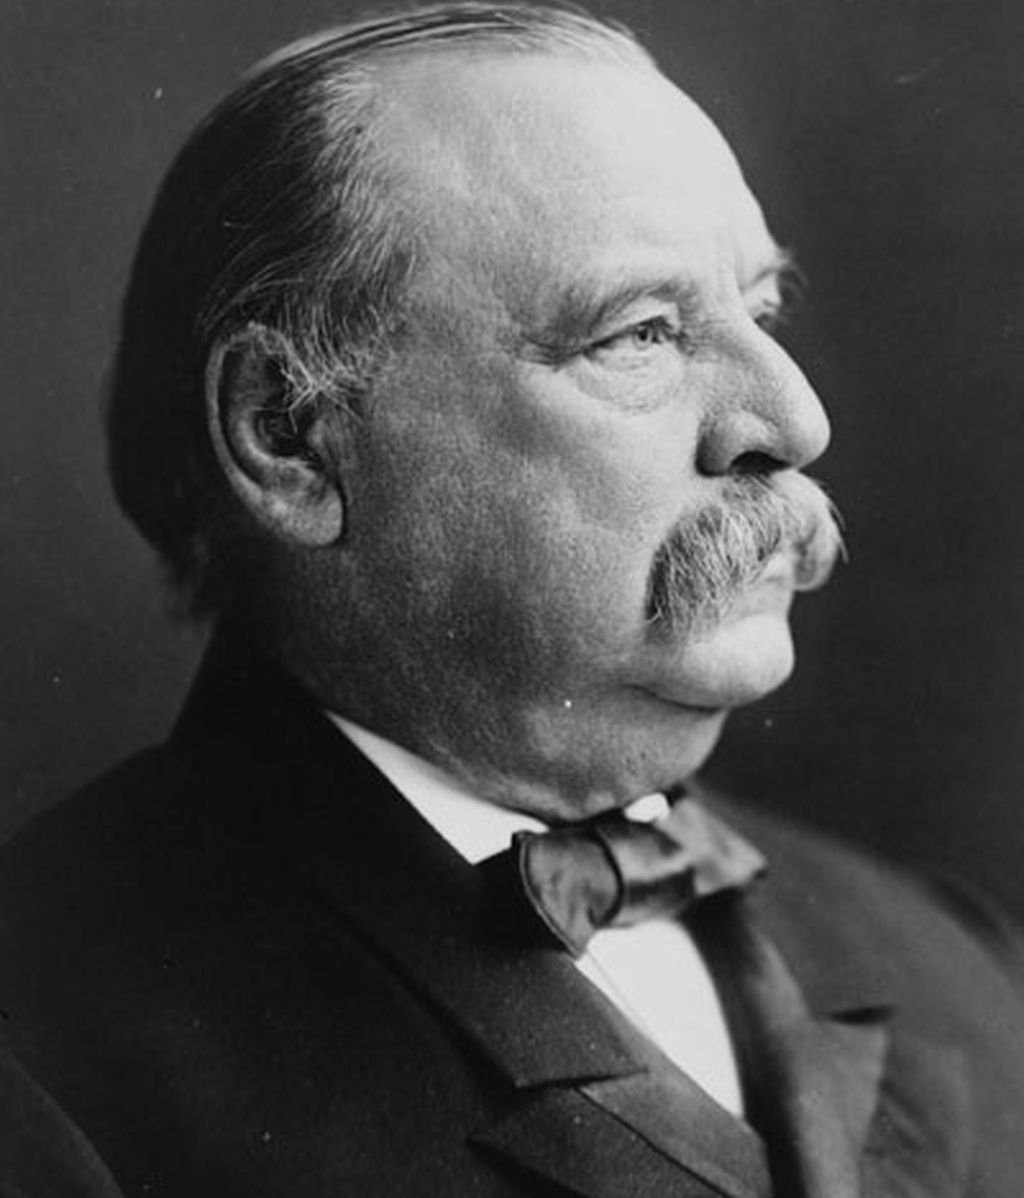 Grover Cleveland (1893-1987)